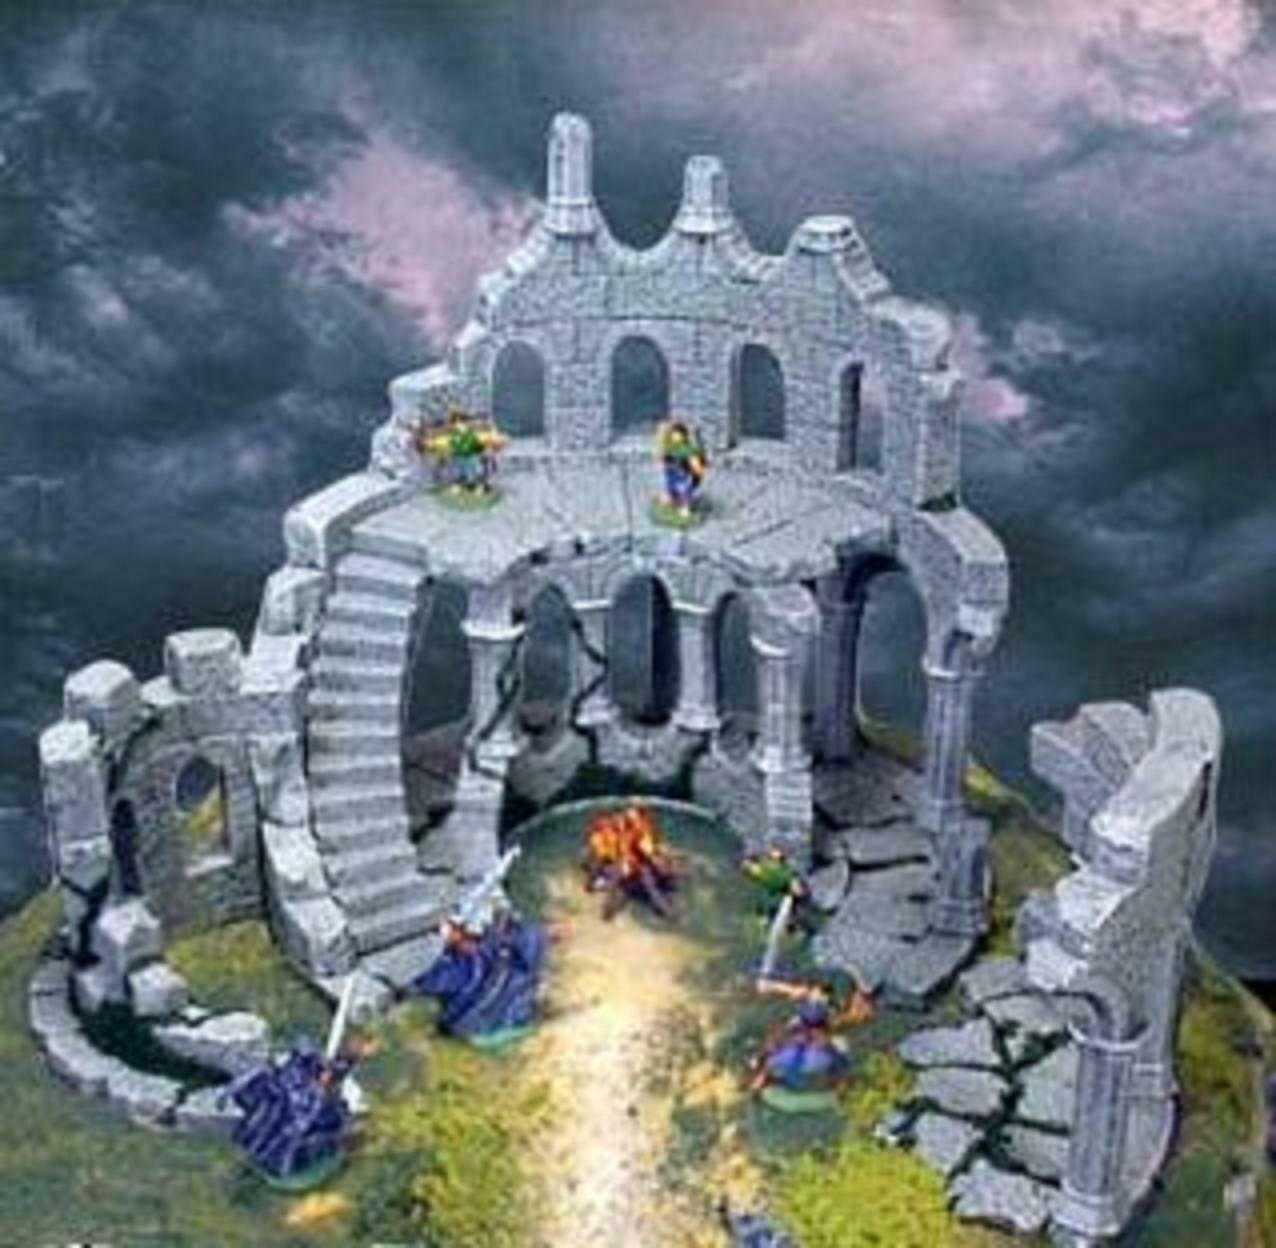 Wargame Scenery D&D Warhammer 25mm - Ruined Tower (Gothic)